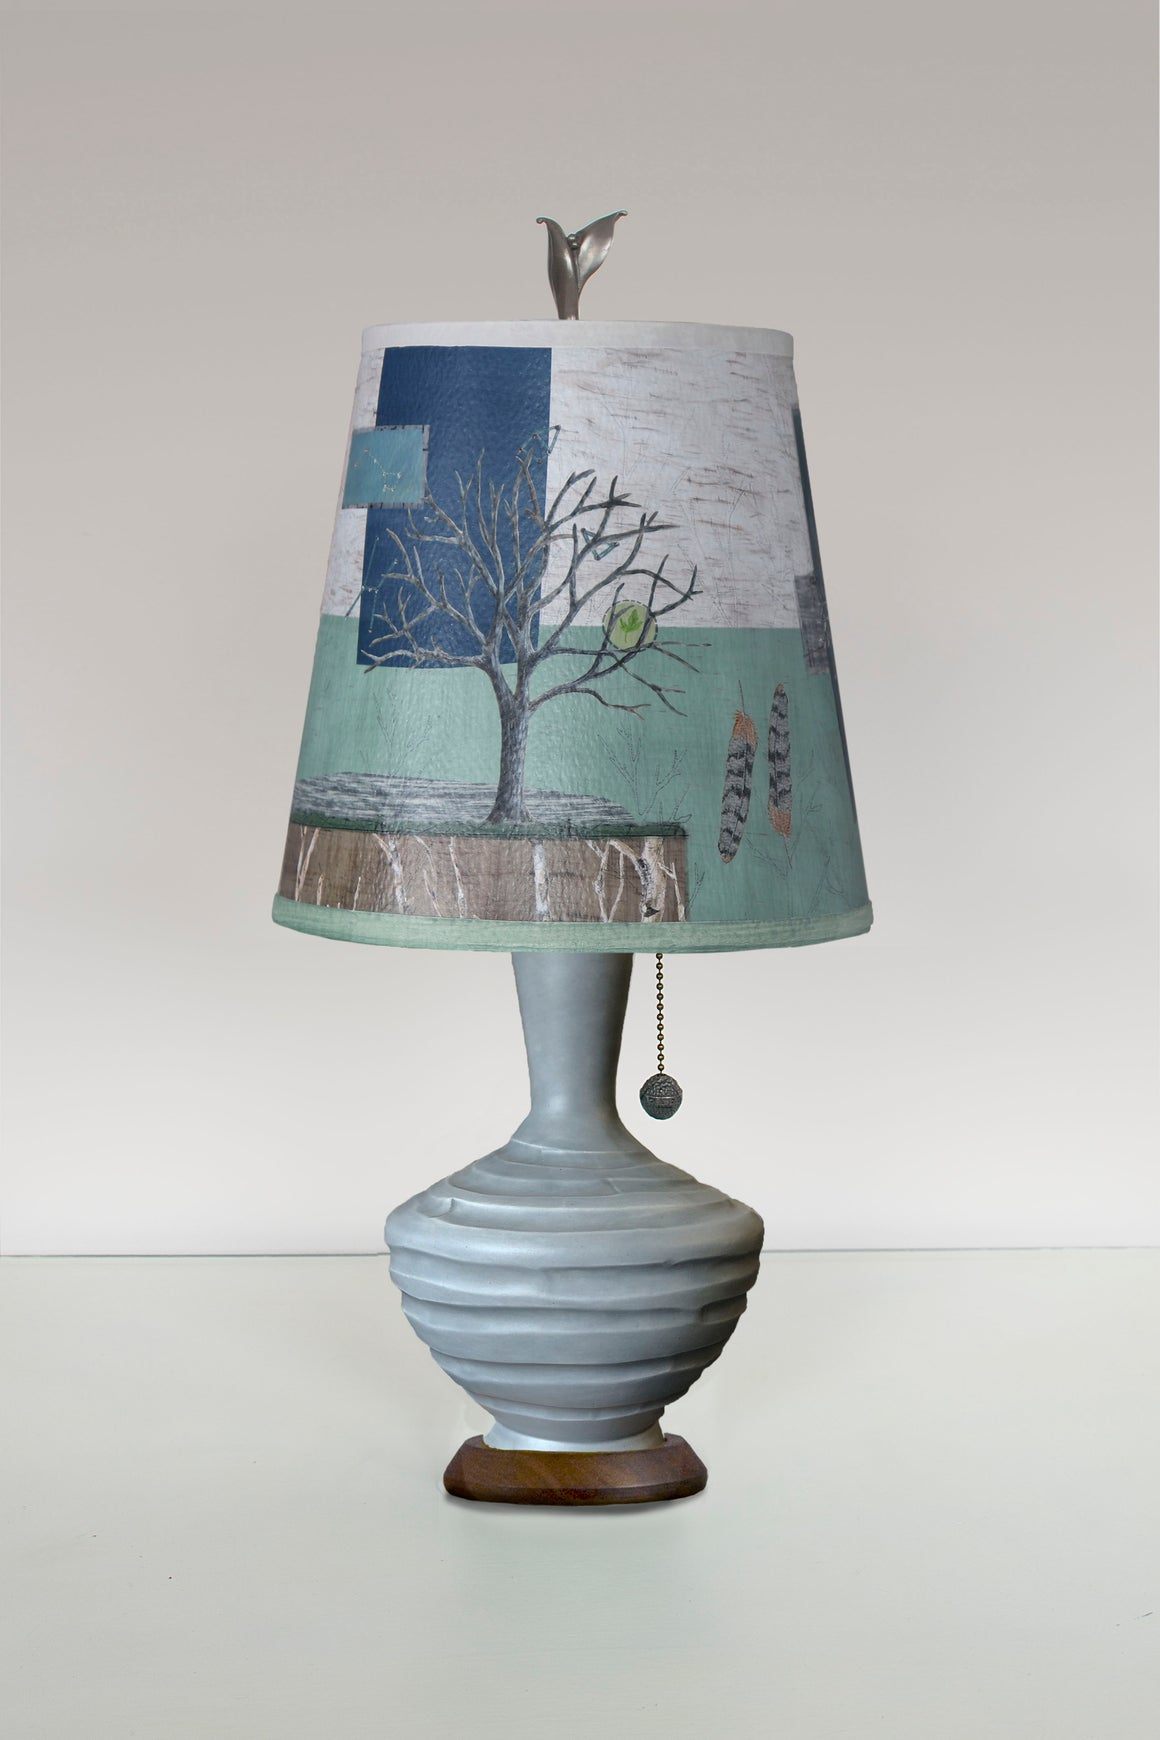 Dove Grey Ceramic Table Lamp with Small Drum Shade in Wander in Field